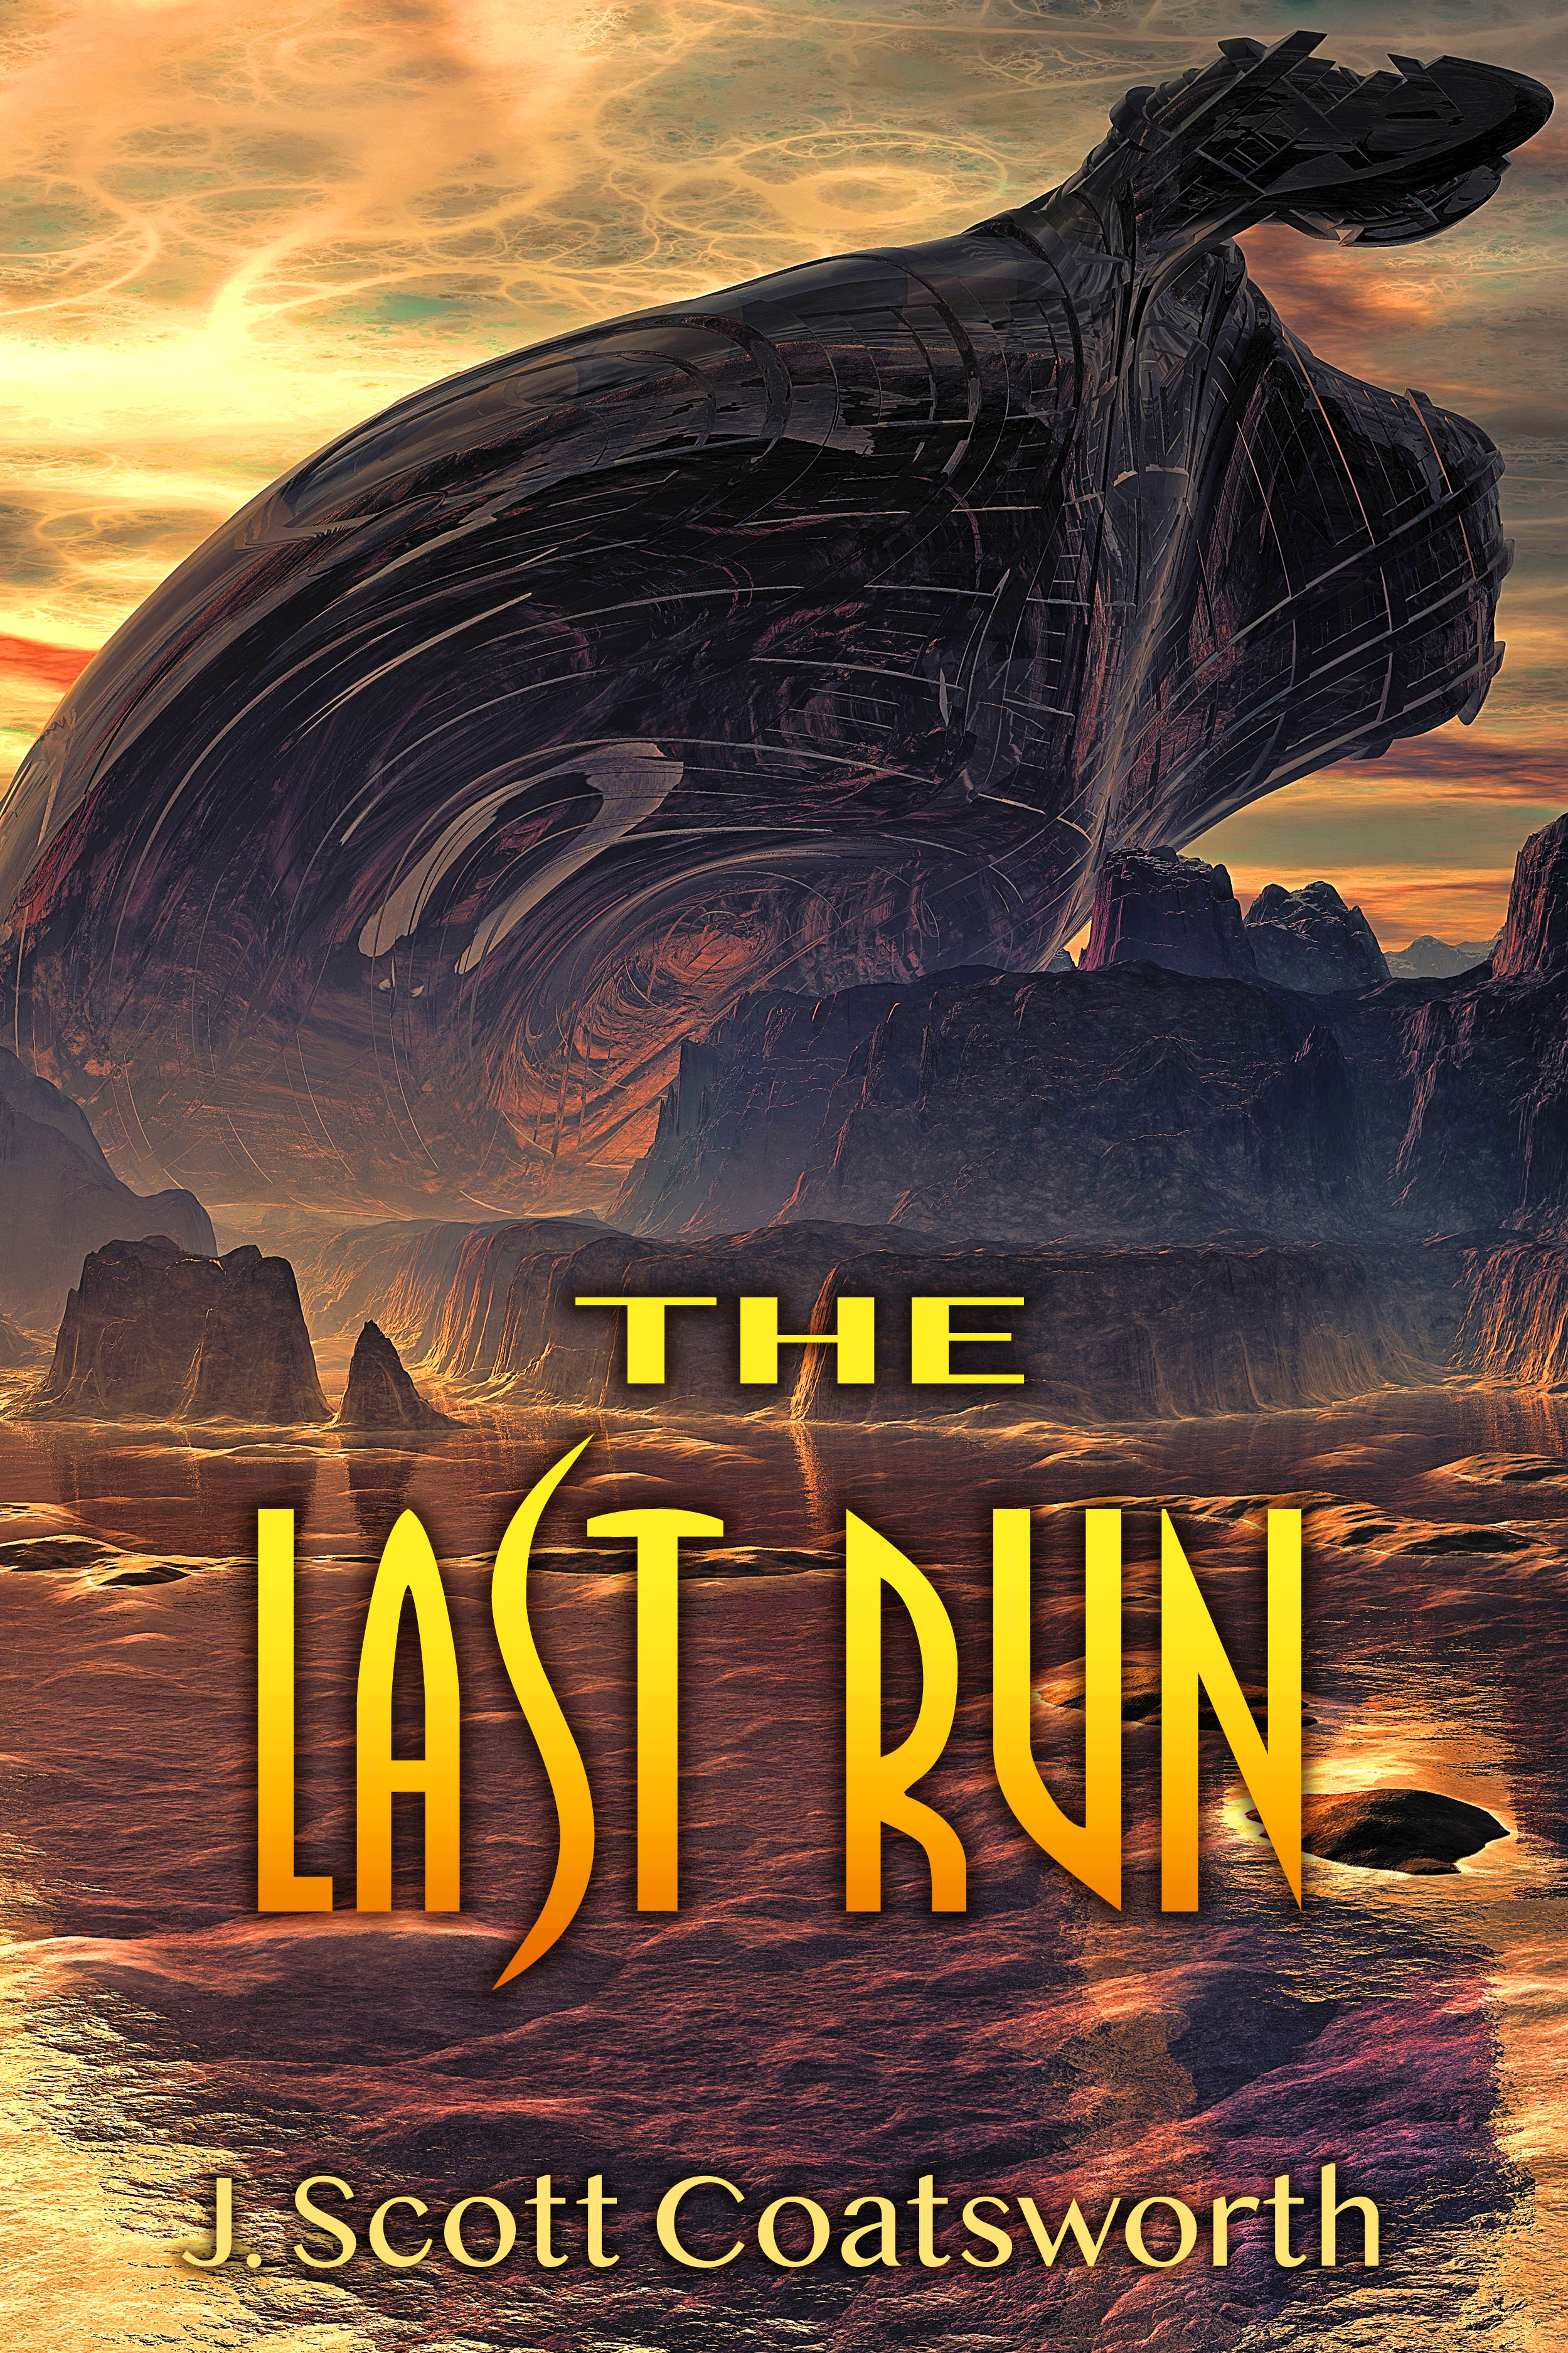 Review: The Last Run by J. Scott Coatsworth